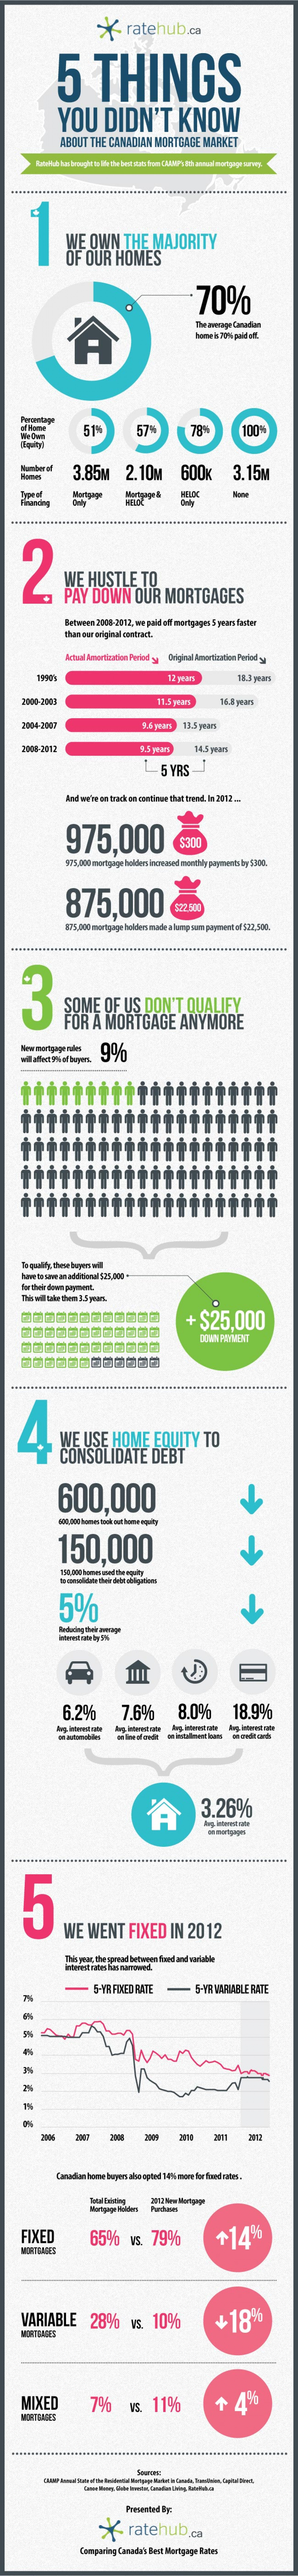 5 Things You Didn't Know About the Canadian Mortgage Market  Infographic